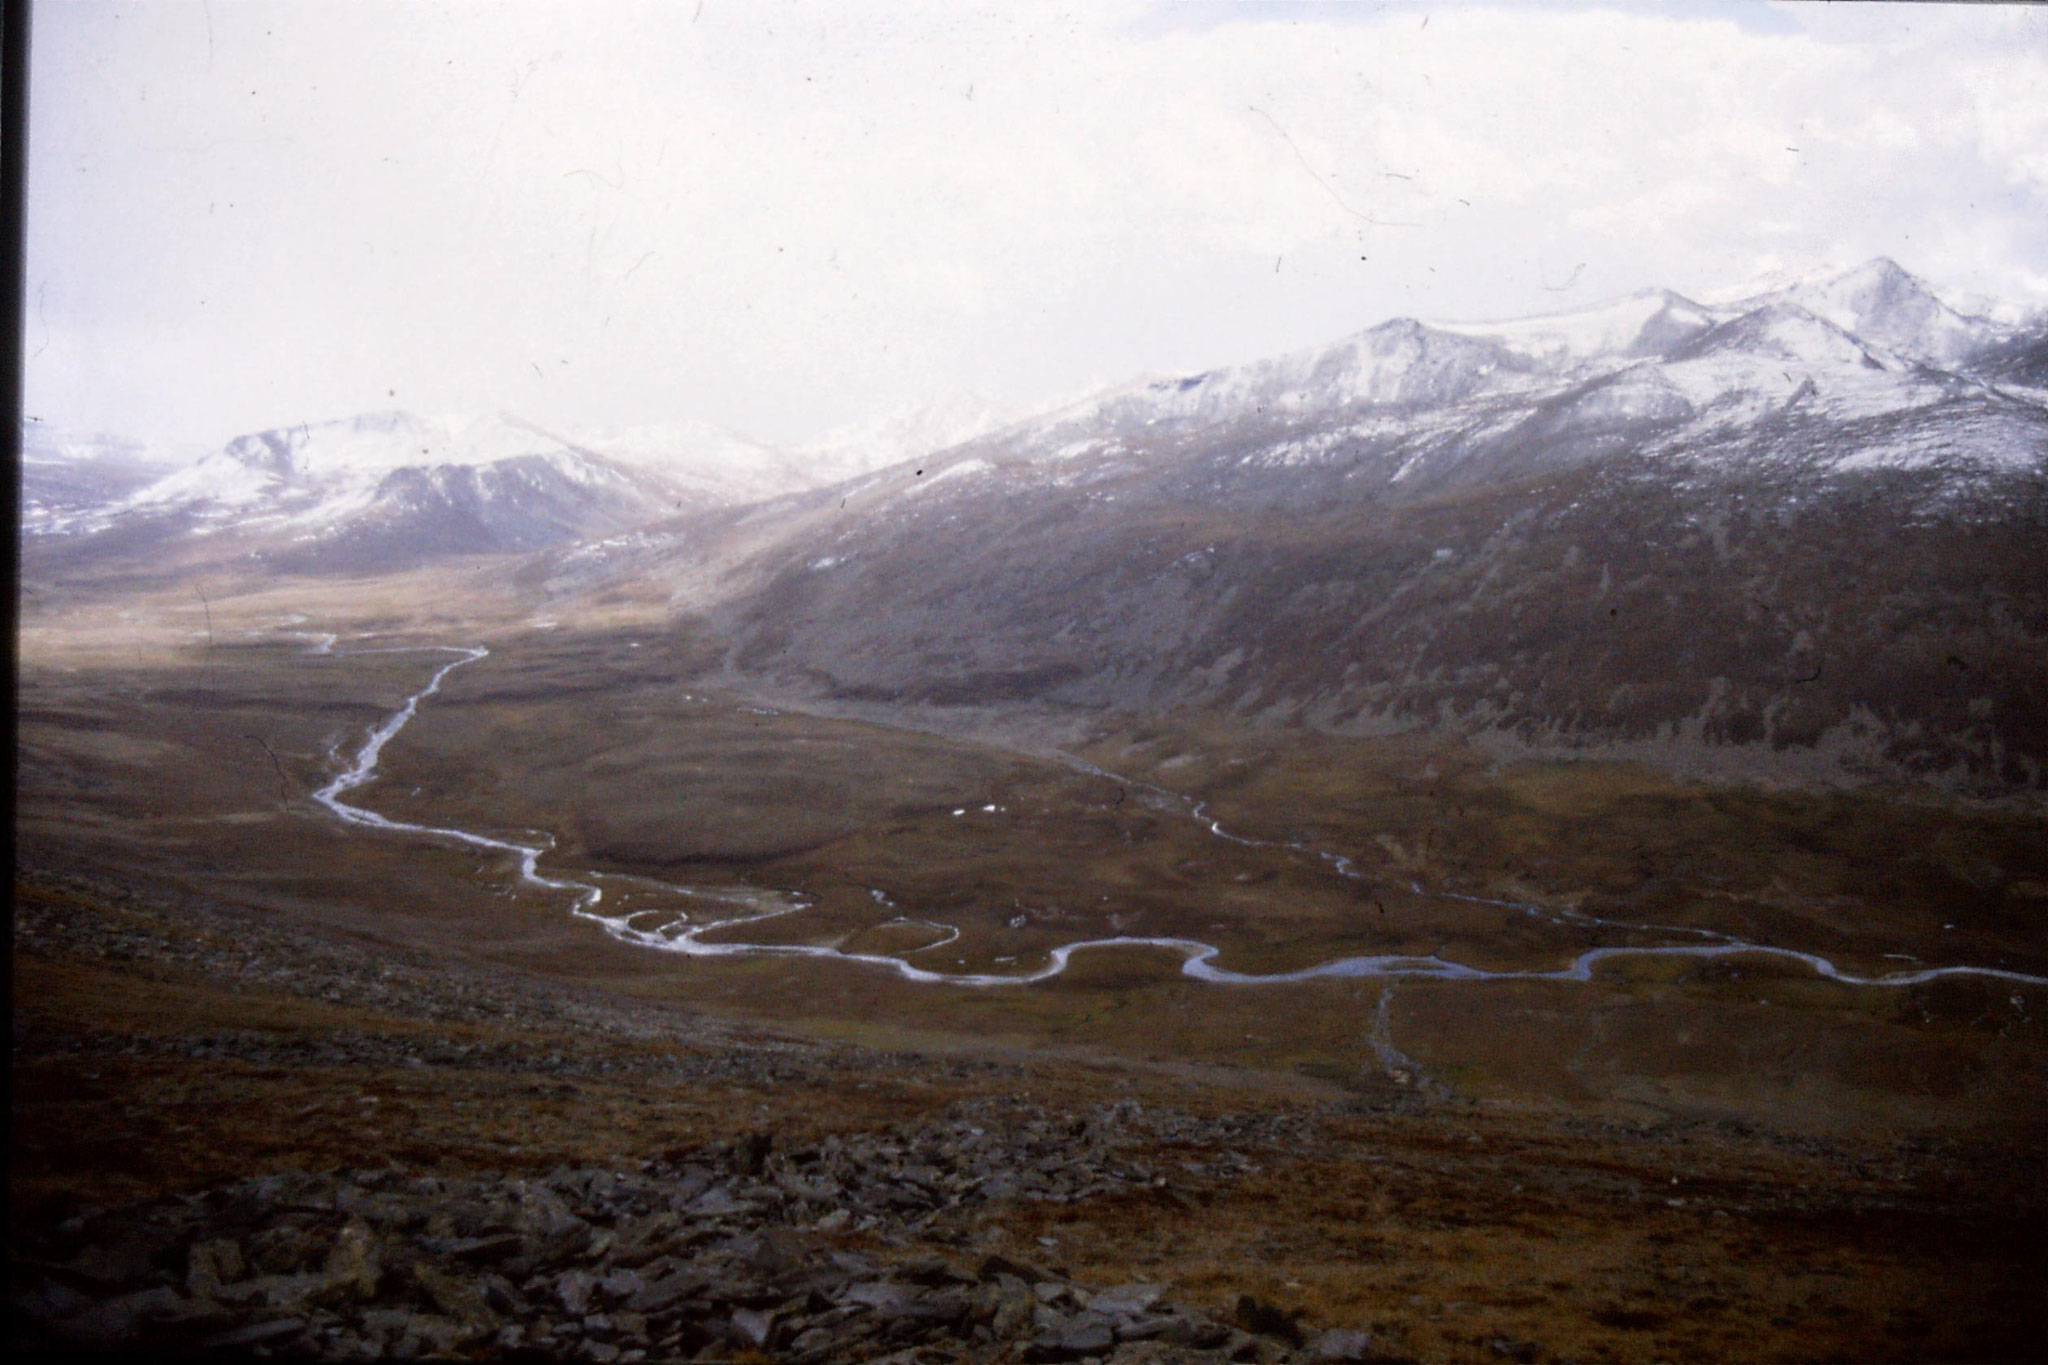 6/10/1989: 33: below Babusar Pass